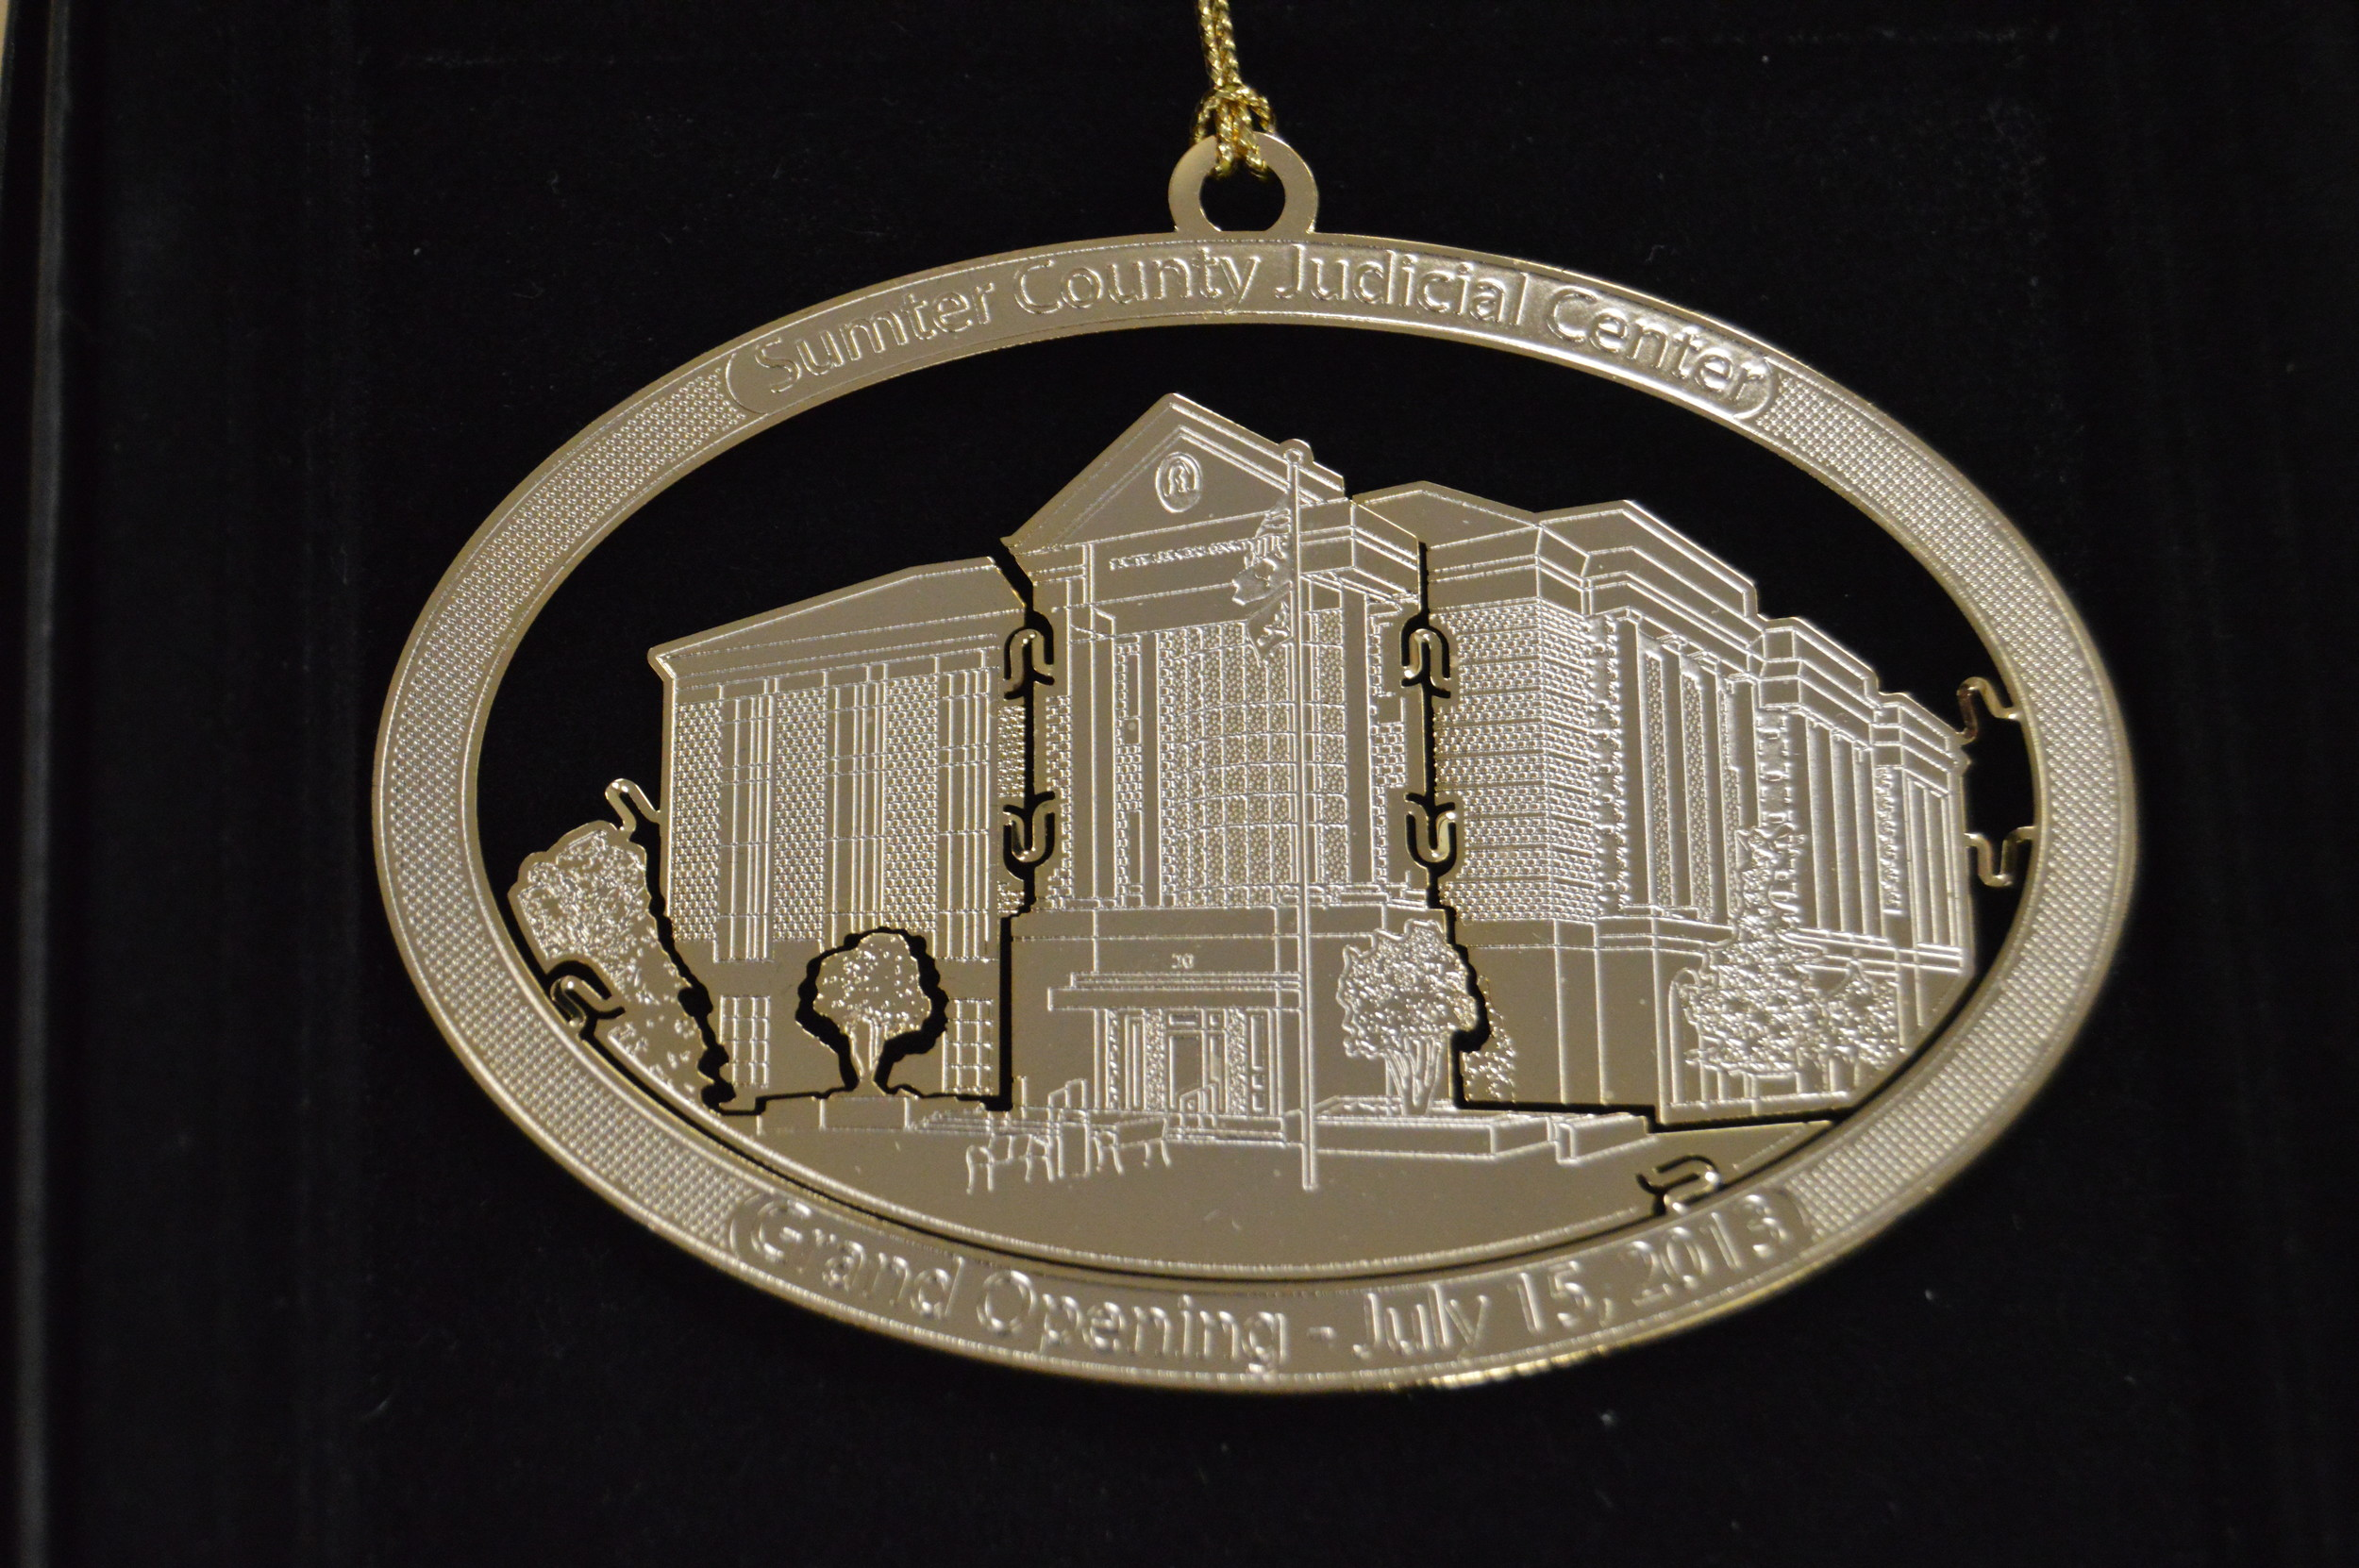 Sumter Volunteers' 2017 Keepsakes Series ornament celebrates the construction of Sumter County Judicial Center, a 2008 Capital Penny Sales Tax project, which opened its doors in 2013.